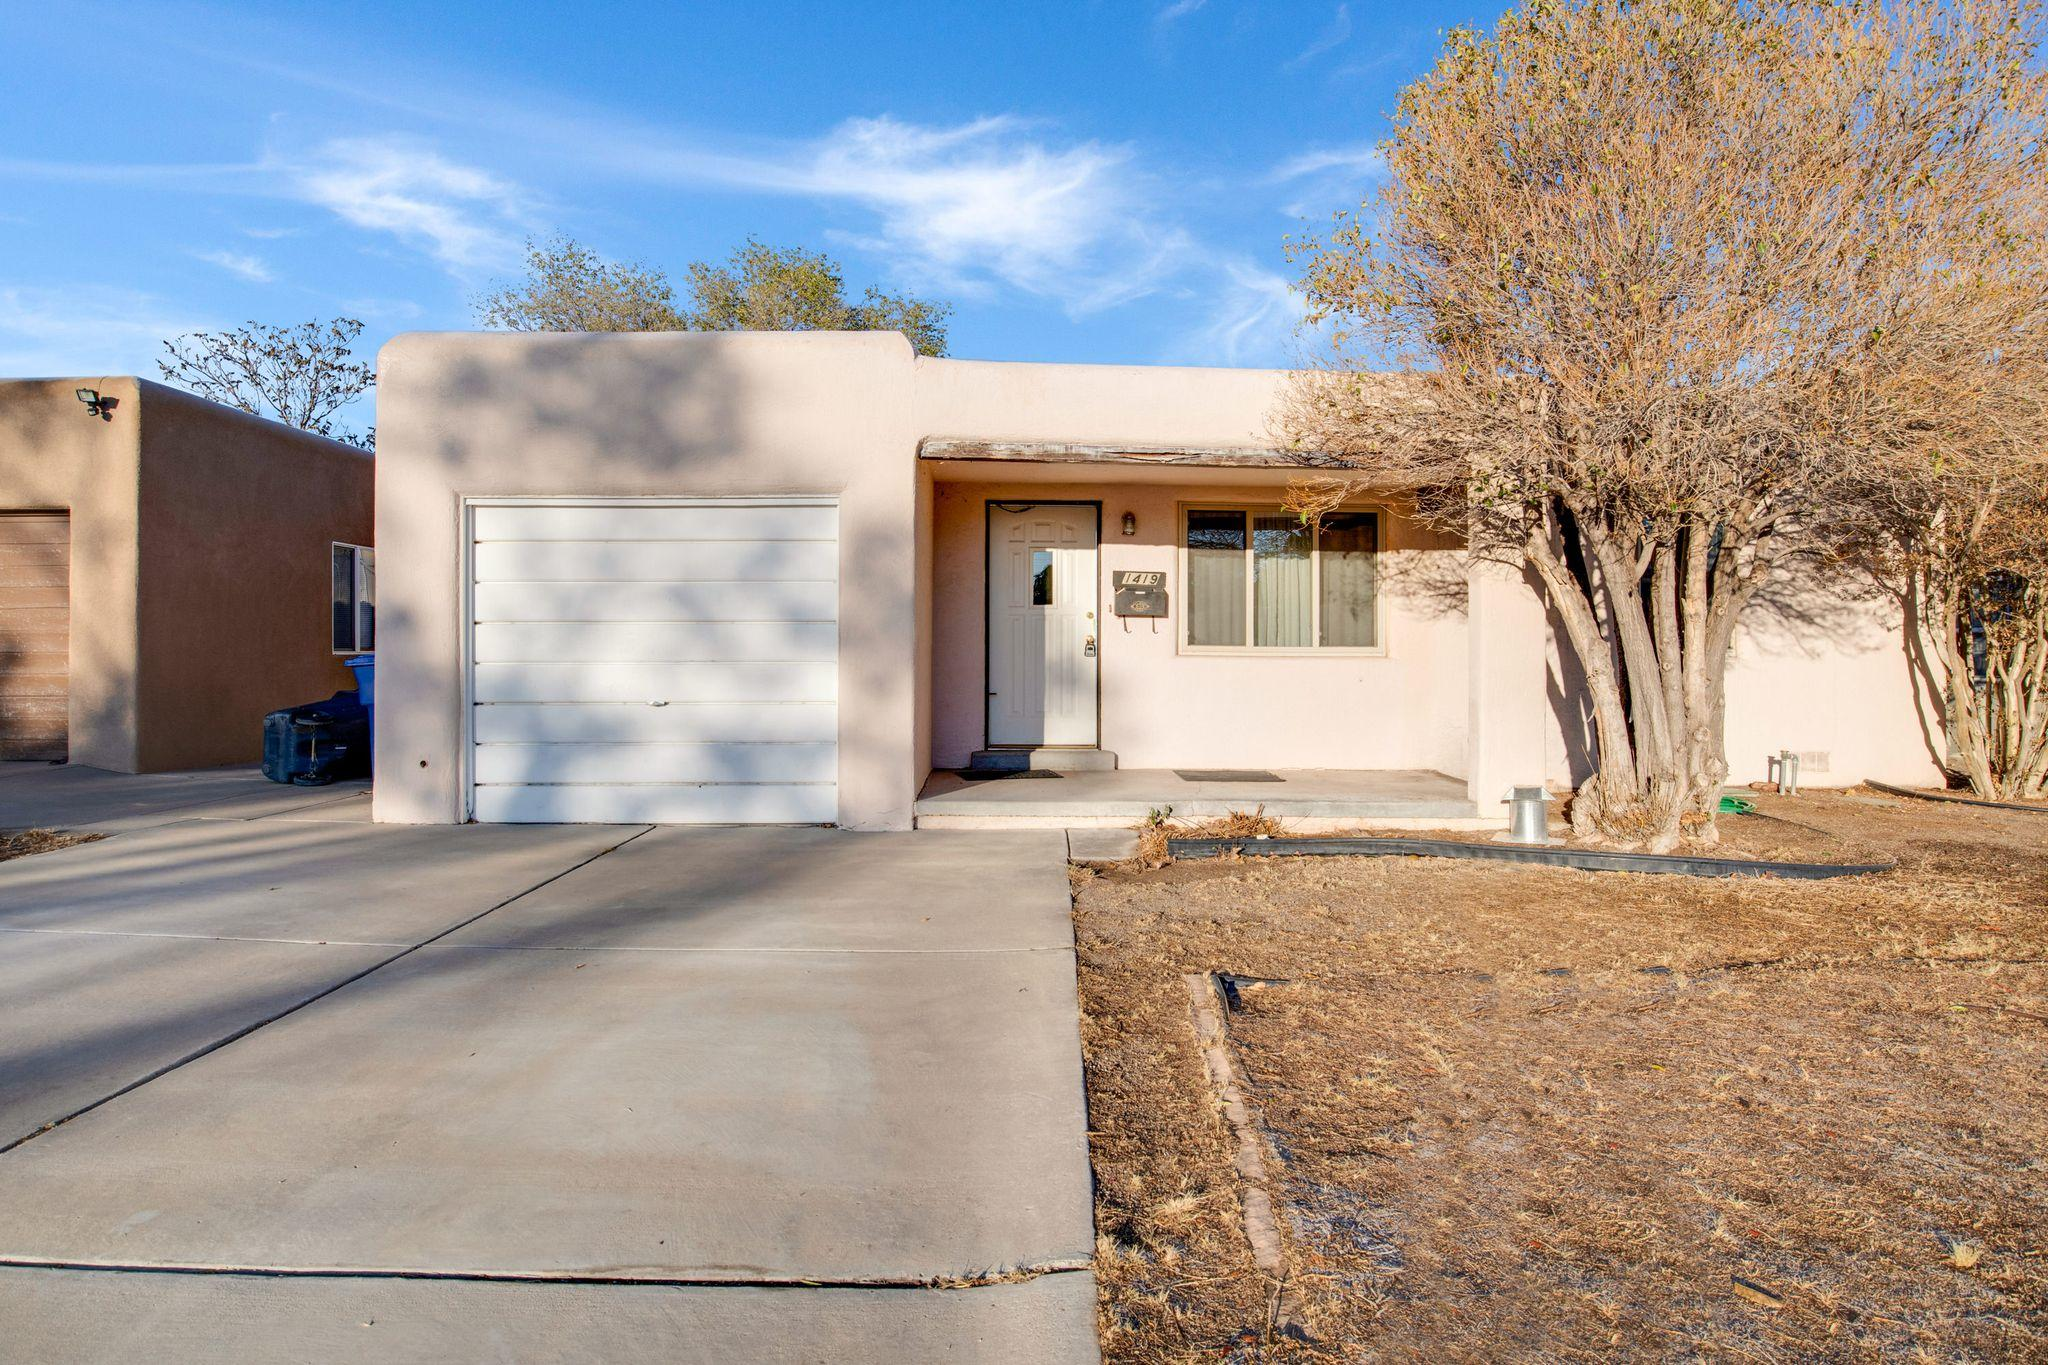 Lots of potential in this 1 owner home located in the desirable UNM area.  The home has a newer roof TPO roof 11/2018, double pane windows, some original hardwood floors, synthetic stucco &  CF heating/refrigerated air. 3 possible living areas, 3 bedrooms & a possible study or office off the master. Large backyard with a wonderful storage building. Summit Park & Montezuma Elementary is just down the street. Close to UNM Hospital, UNM North Golf course & UNM Medical & Law Schools.  Easy access to Whole Foods, Smith's, shopping, restaurants, I-40 & I-25. There are rooms where the carpet has been pulled up and ready for your imagination.  There are lots of possibilities to make this one your own! Make sure to check out the Virtual Tour!